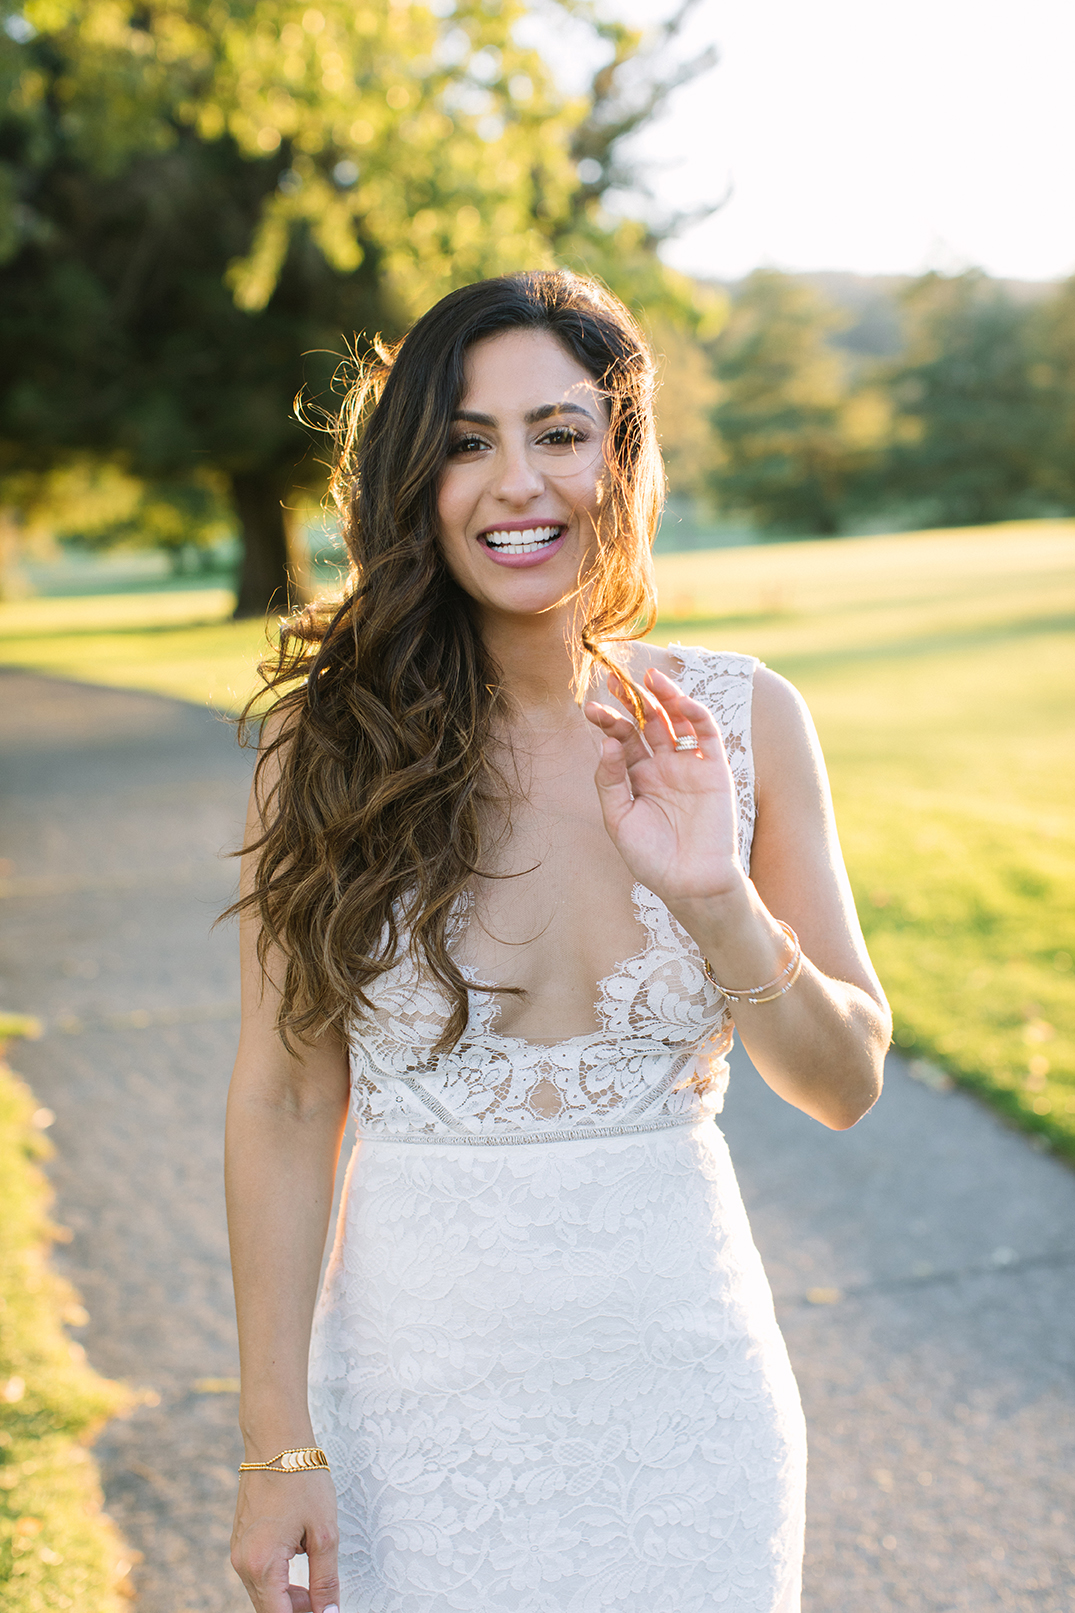 A beautiful bride at sunset smiling while wind blows her hair.